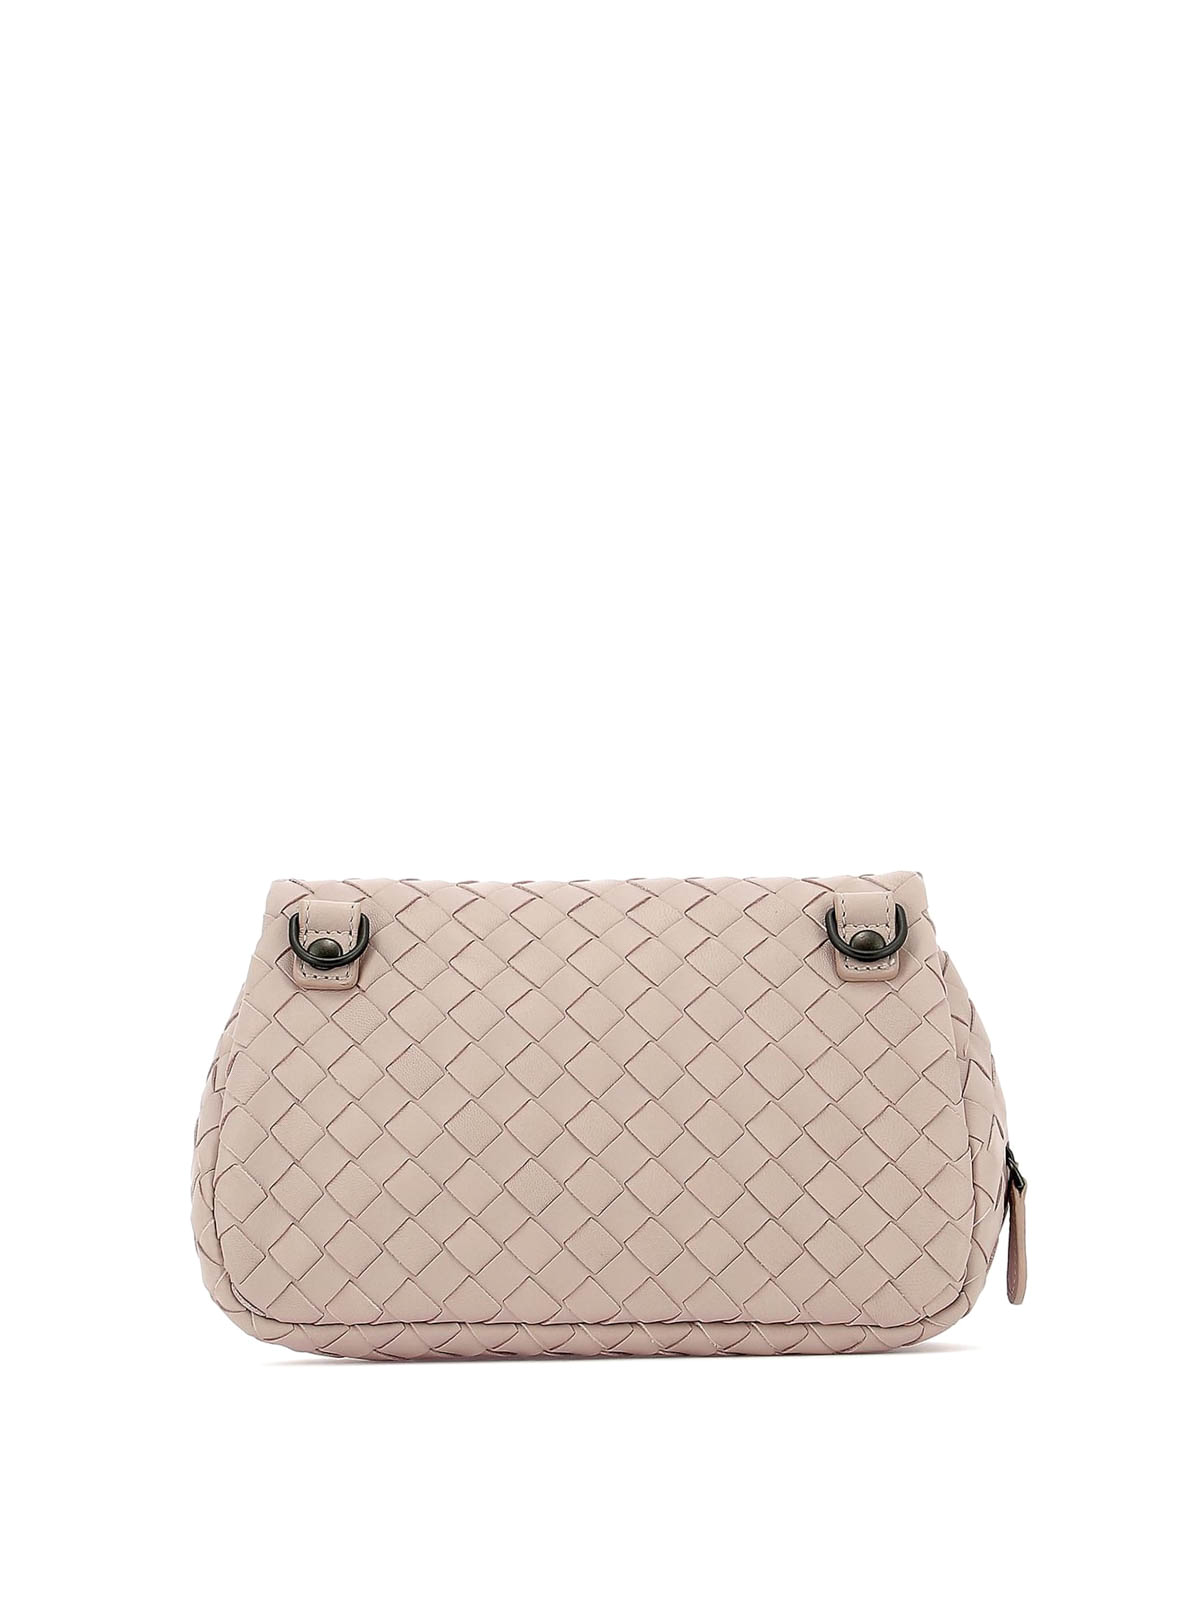 23cbe429ca iKRIX BOTTEGA VENETA  cross body bags - Intrecciato nappa cross body bag